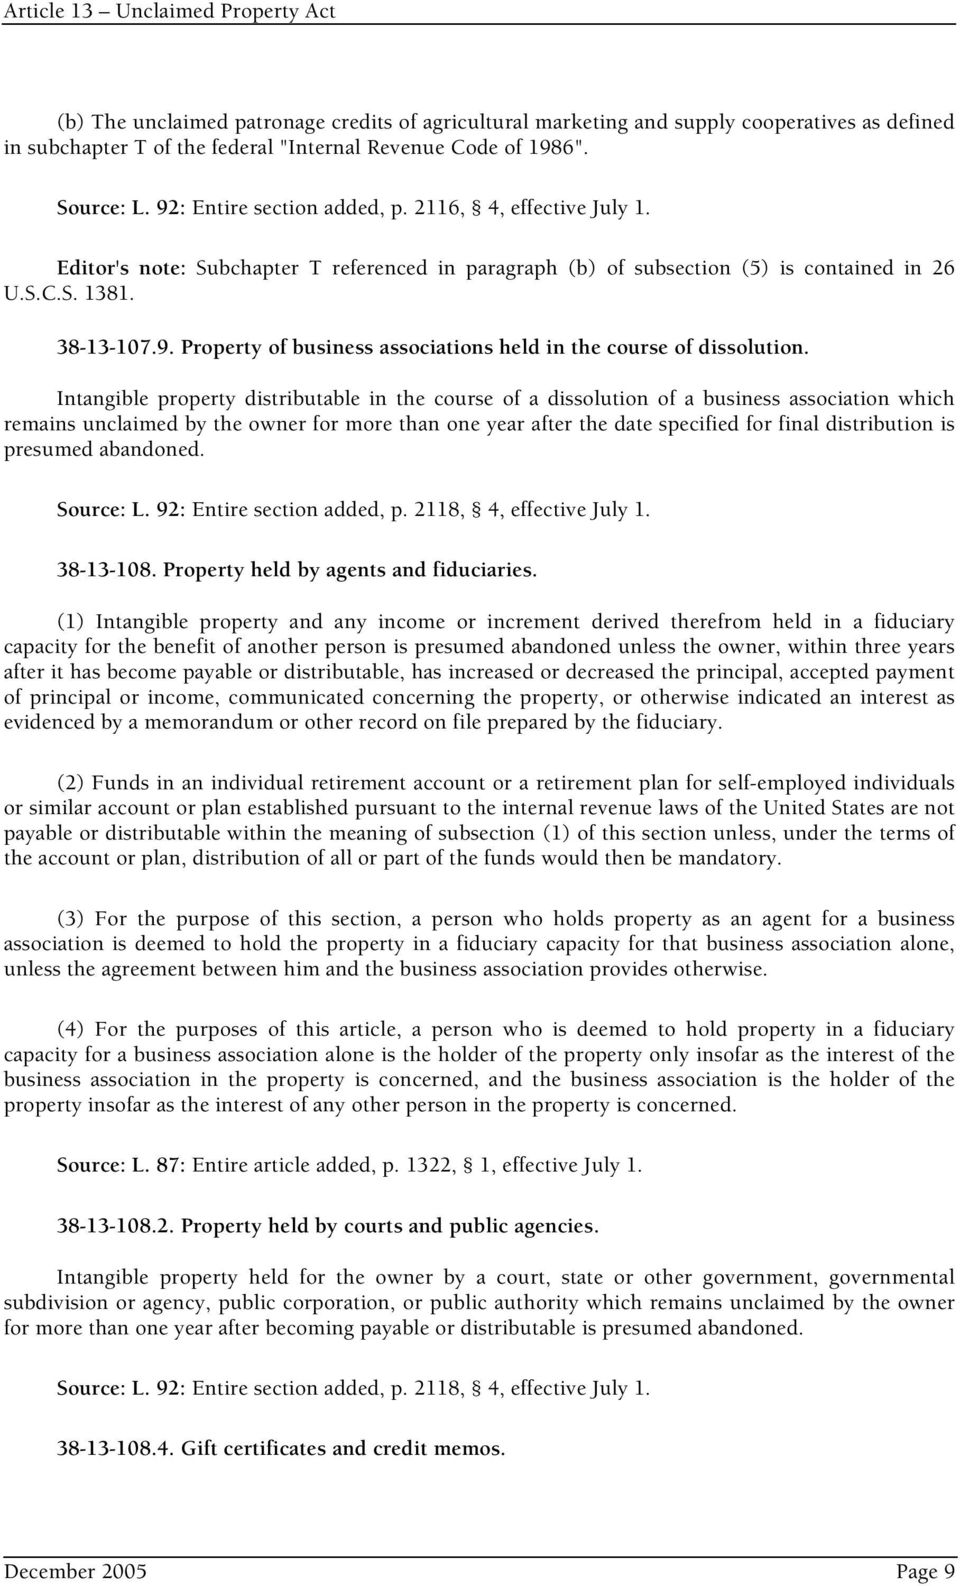 Article 13 Unclaimed Property Act - PDF